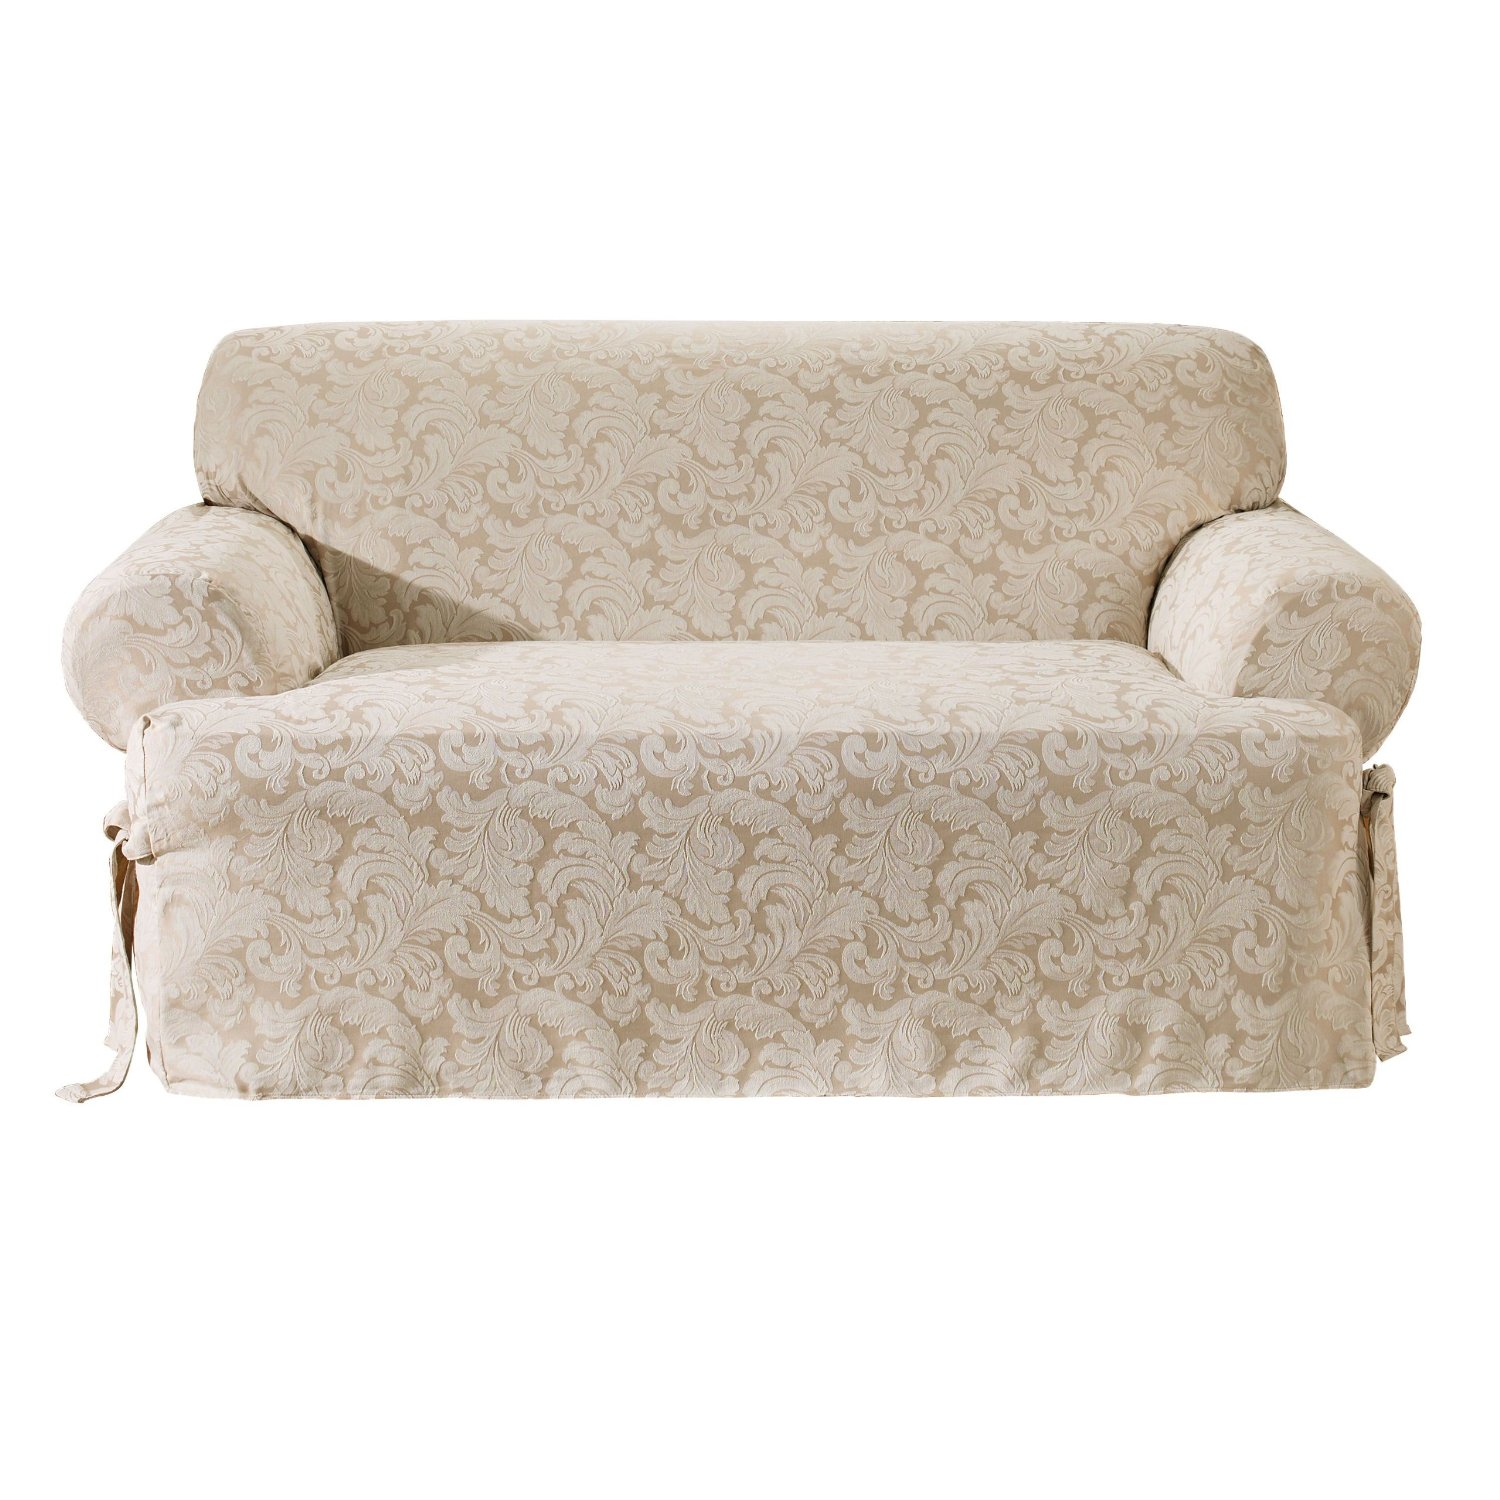 beautiful sofa with surefit cover in white with floral pattern for living room decor ideas